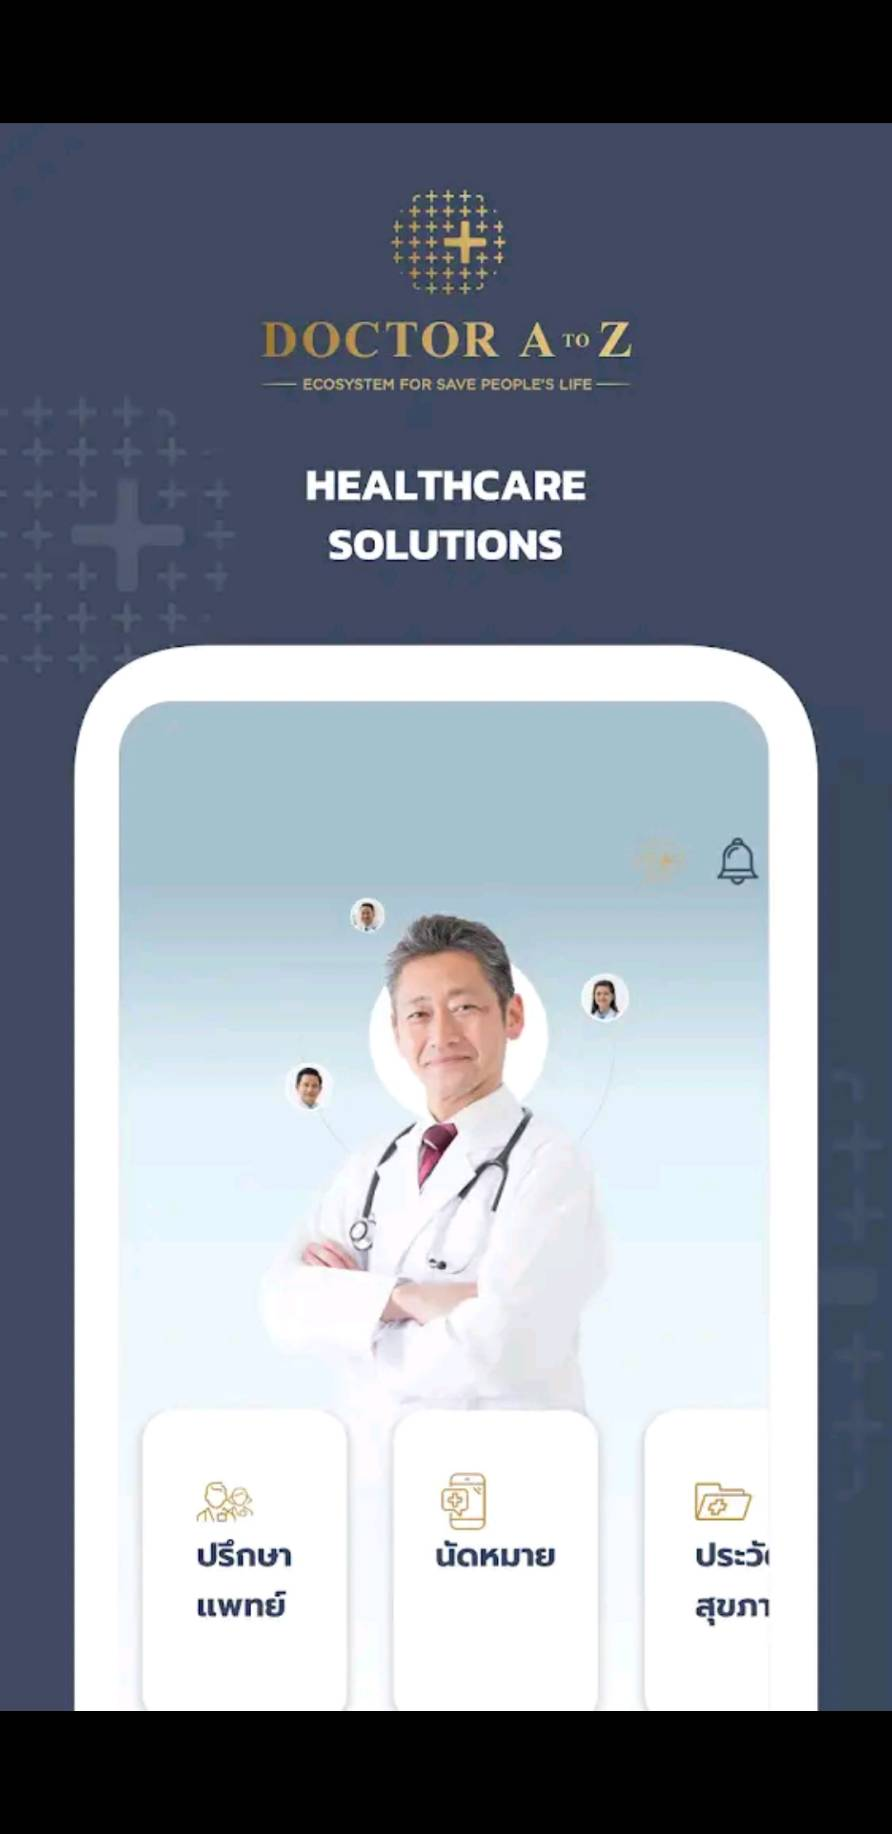 Doctor A to Z Healthcare Ecosystem (3)